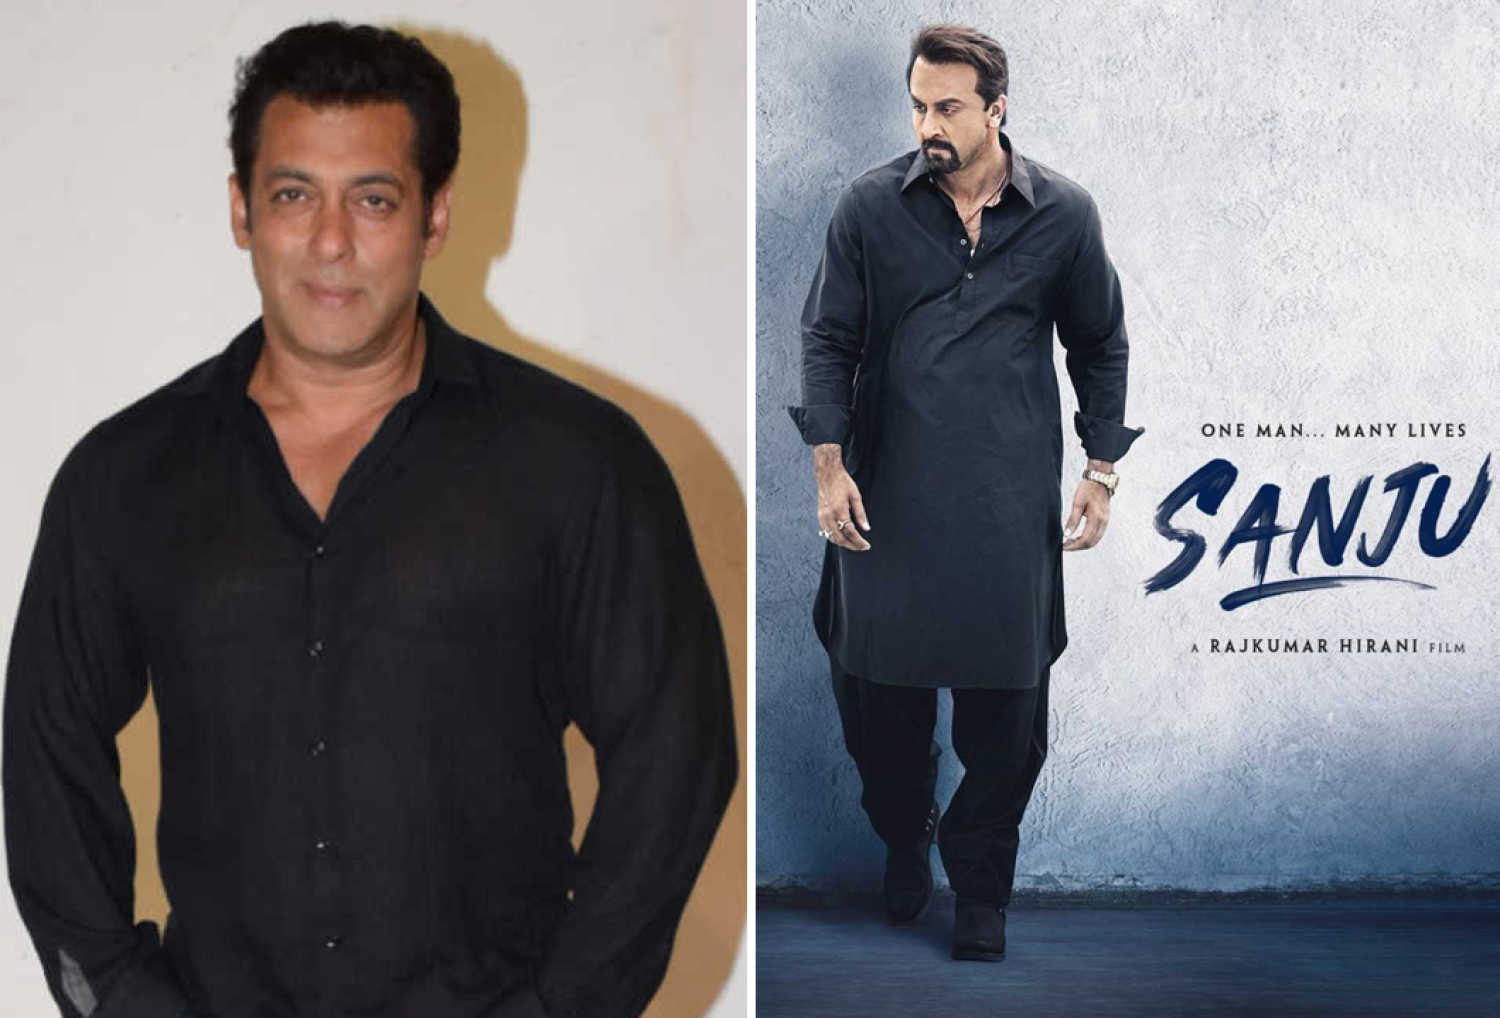 Sanjay Dutt should have played last portions in his biopic, says Salman